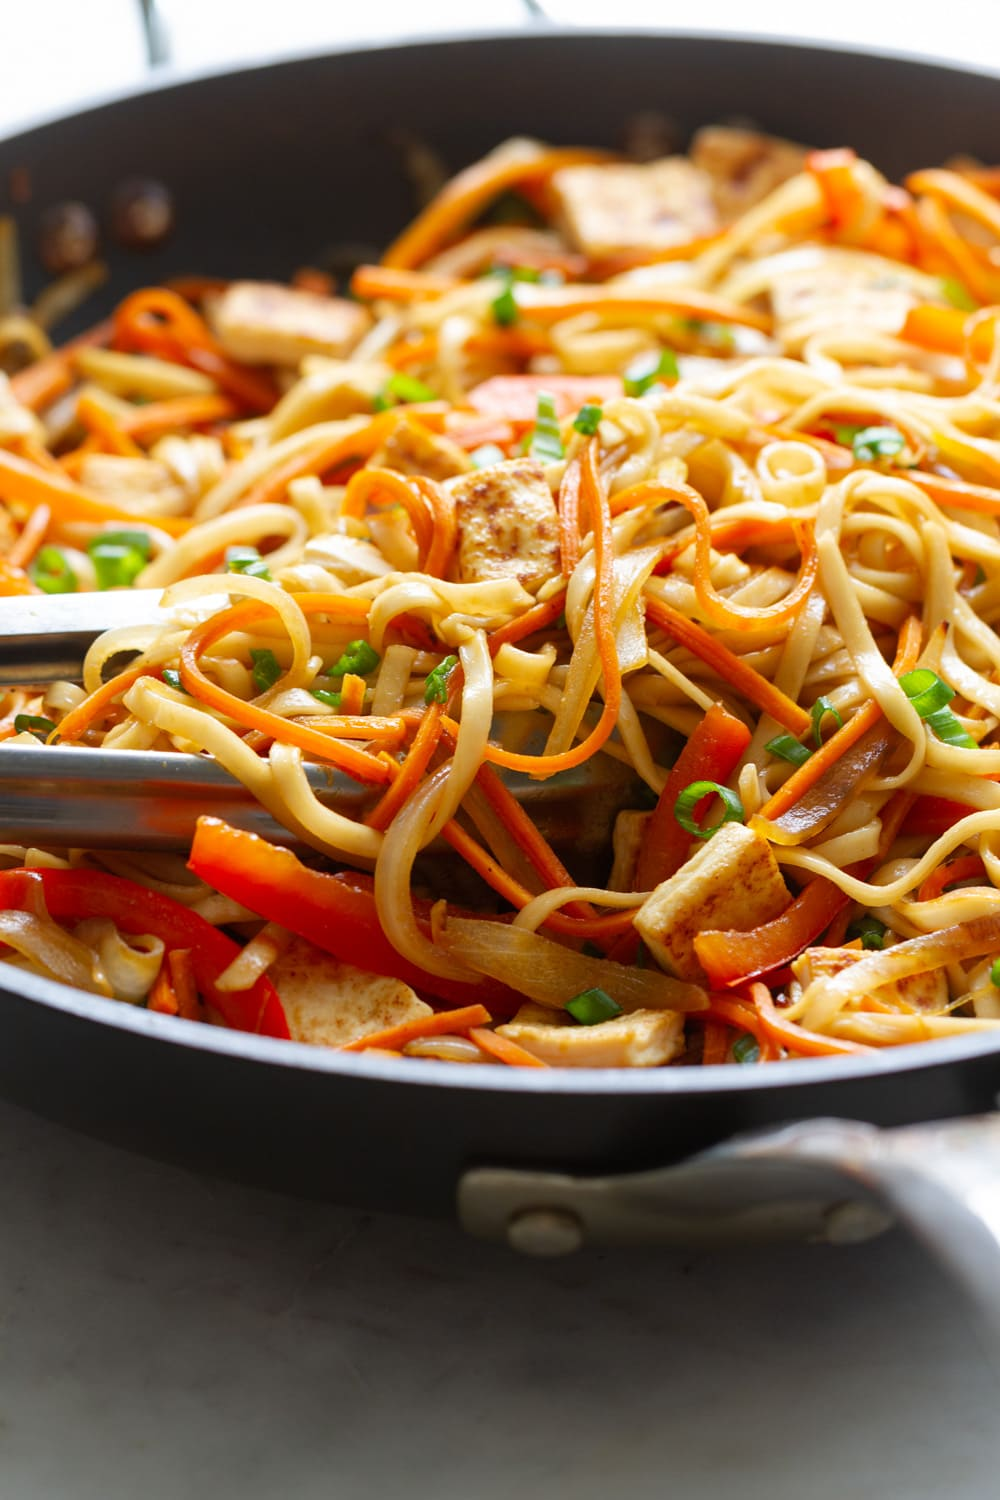 vegetable lo mein freshly made in a skillet